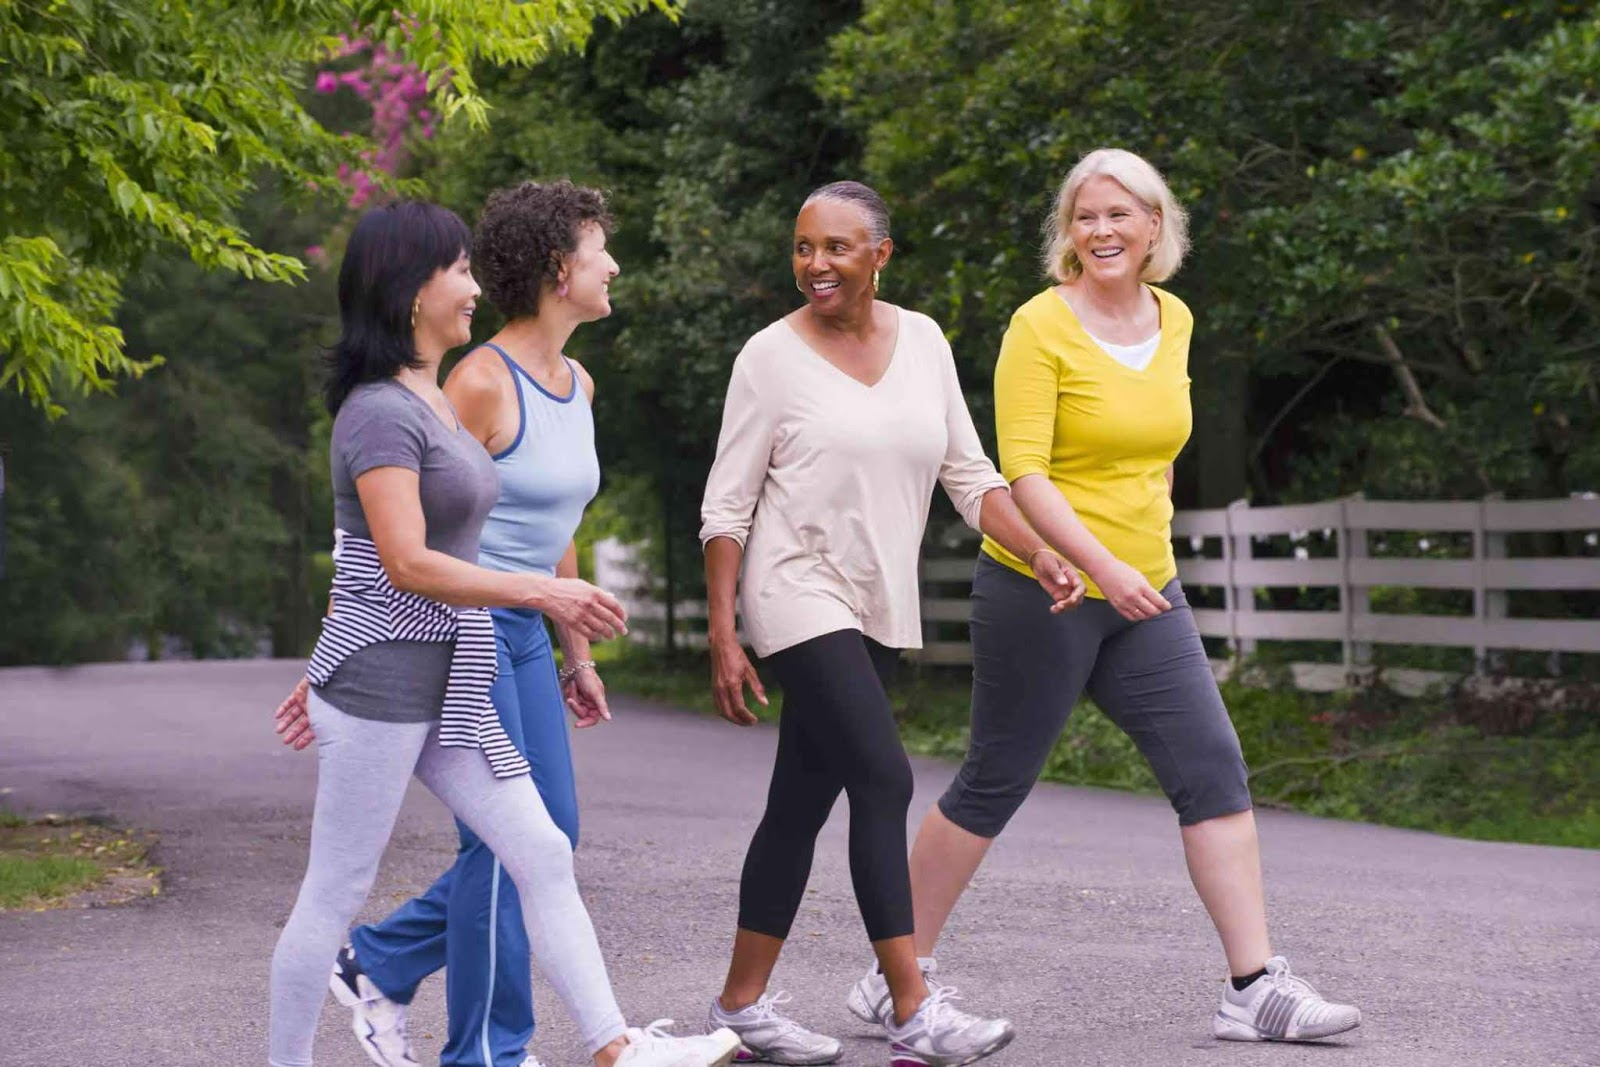 Walking Improves Brain Activity, Fights Depression, Reduces Obesity And Treats Other Diseases